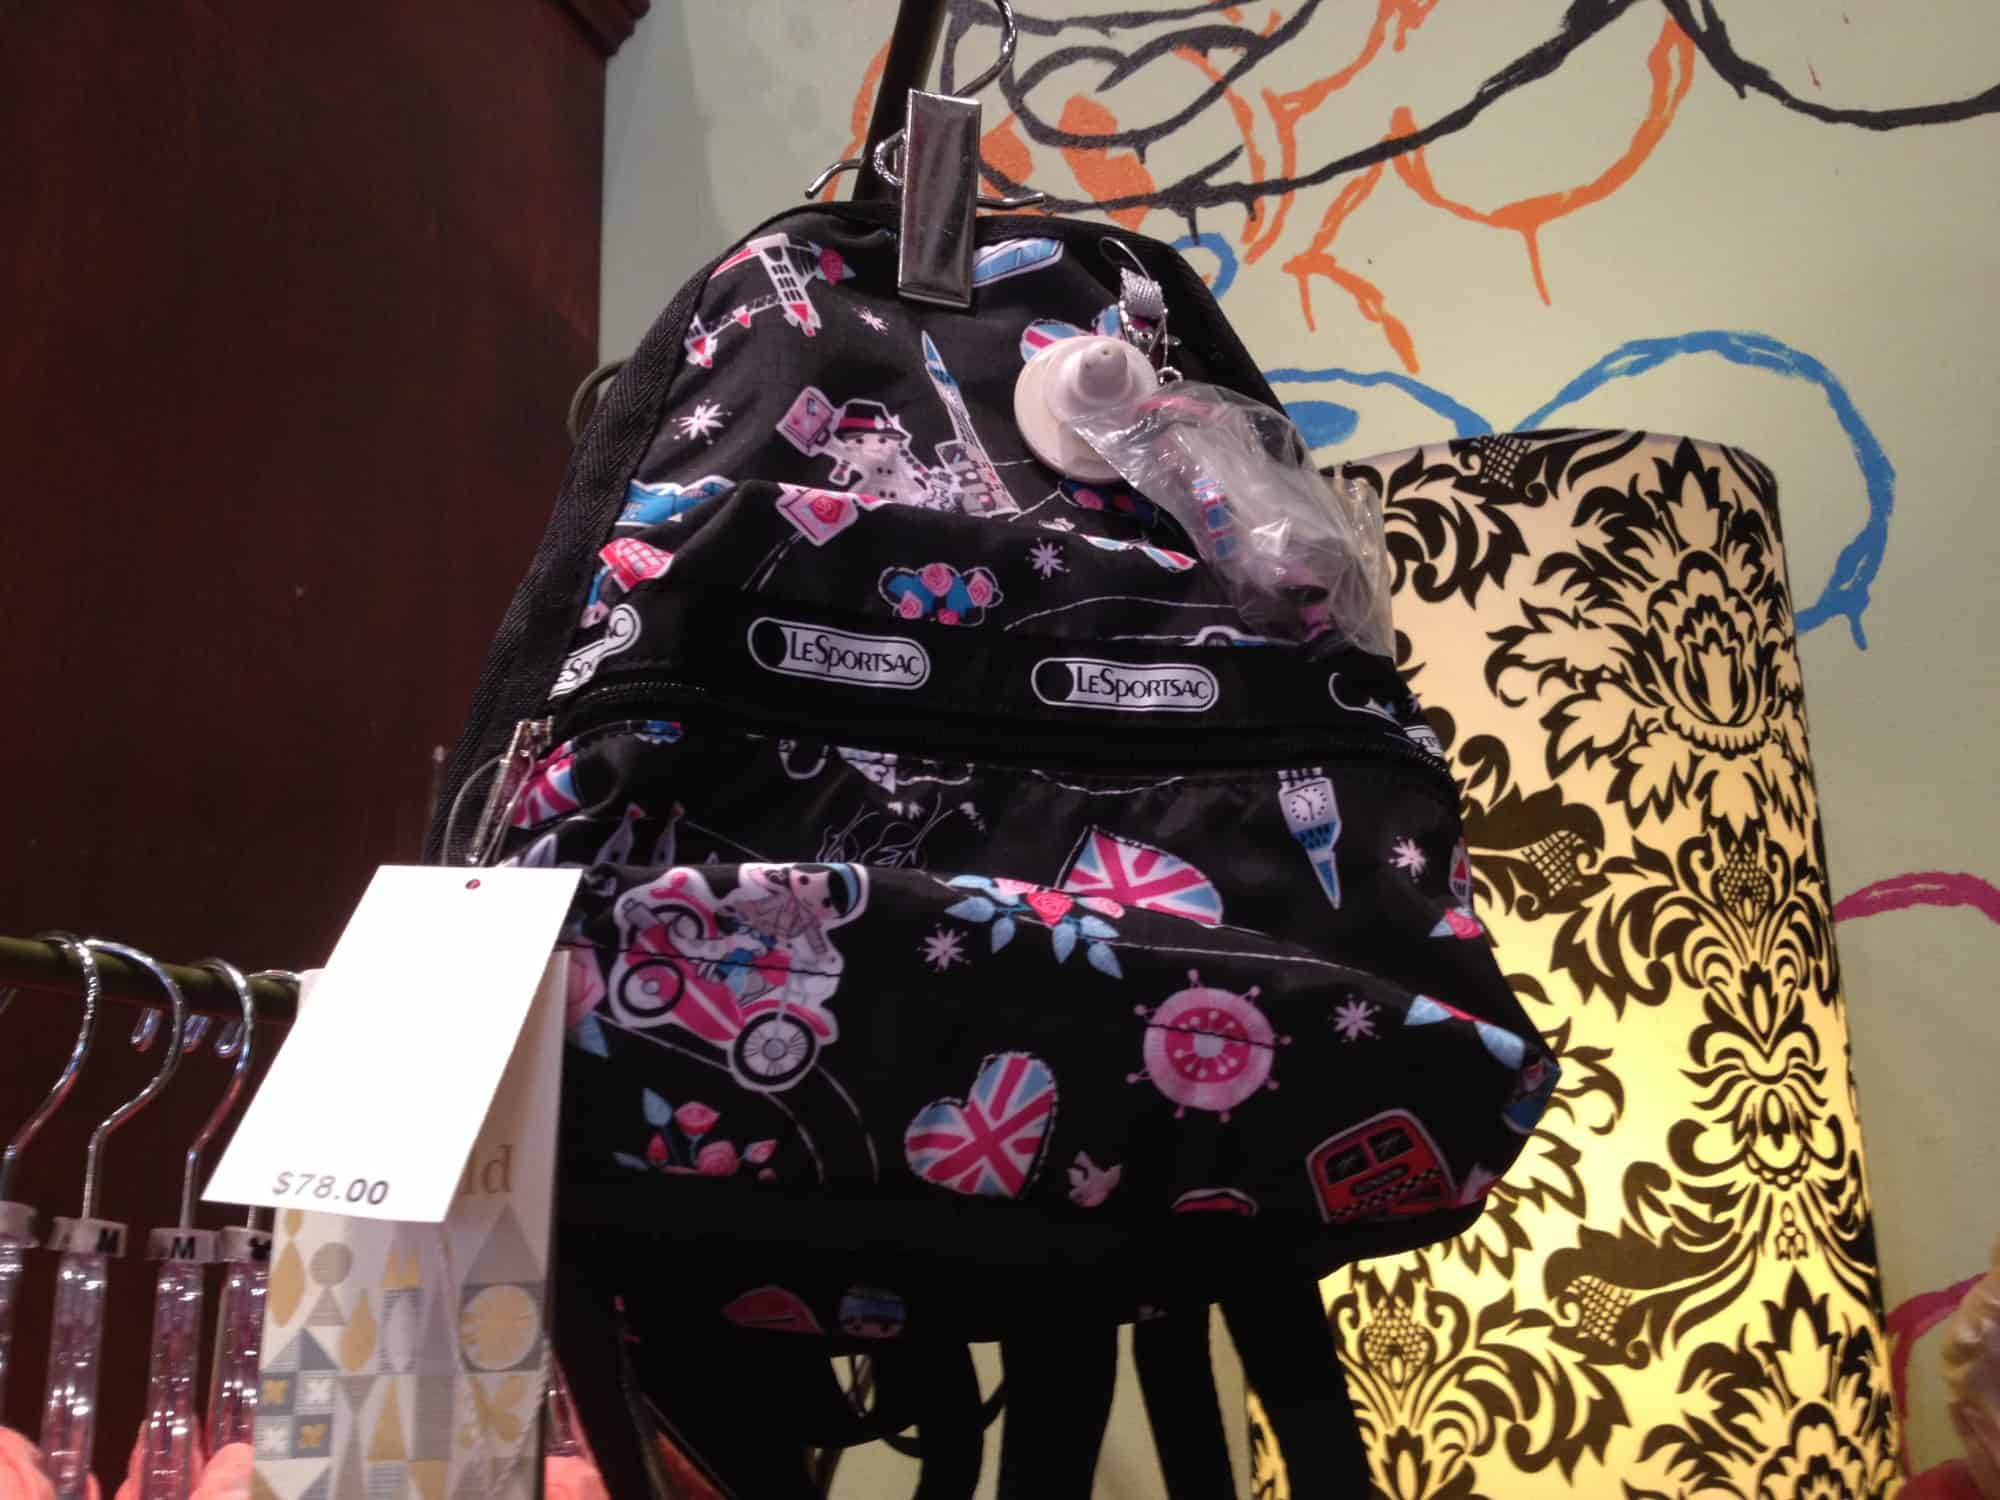 Disney LeSportsac Winter 2012 London